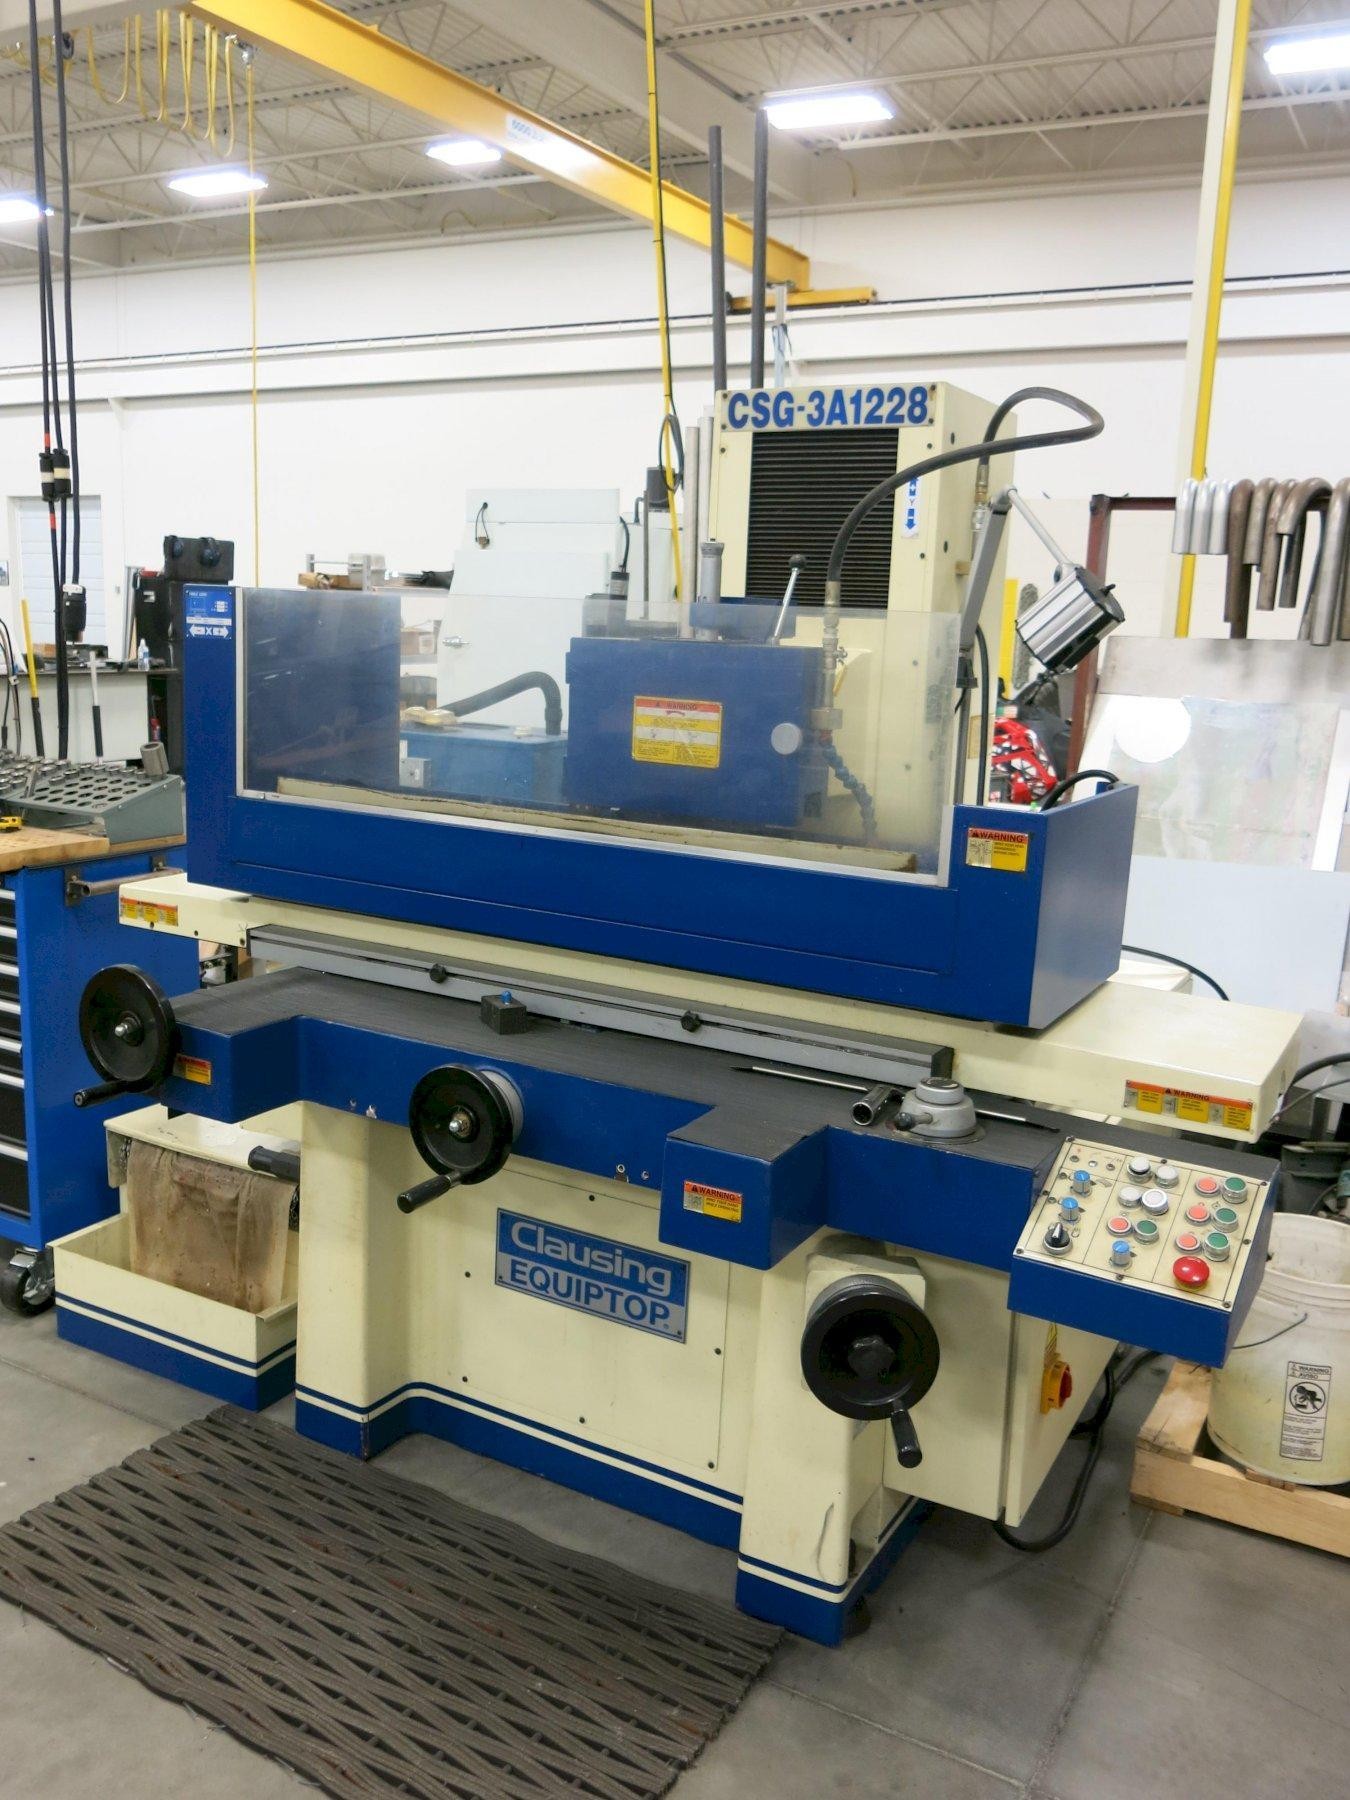 "12 x 28 - Clausing Equiptool CSG3A1228 Hydraulic Precision Surface Grinder,  12 x 28 Chuck, Over Wheel Dress, 0.001"" Manual DF, New 2000"